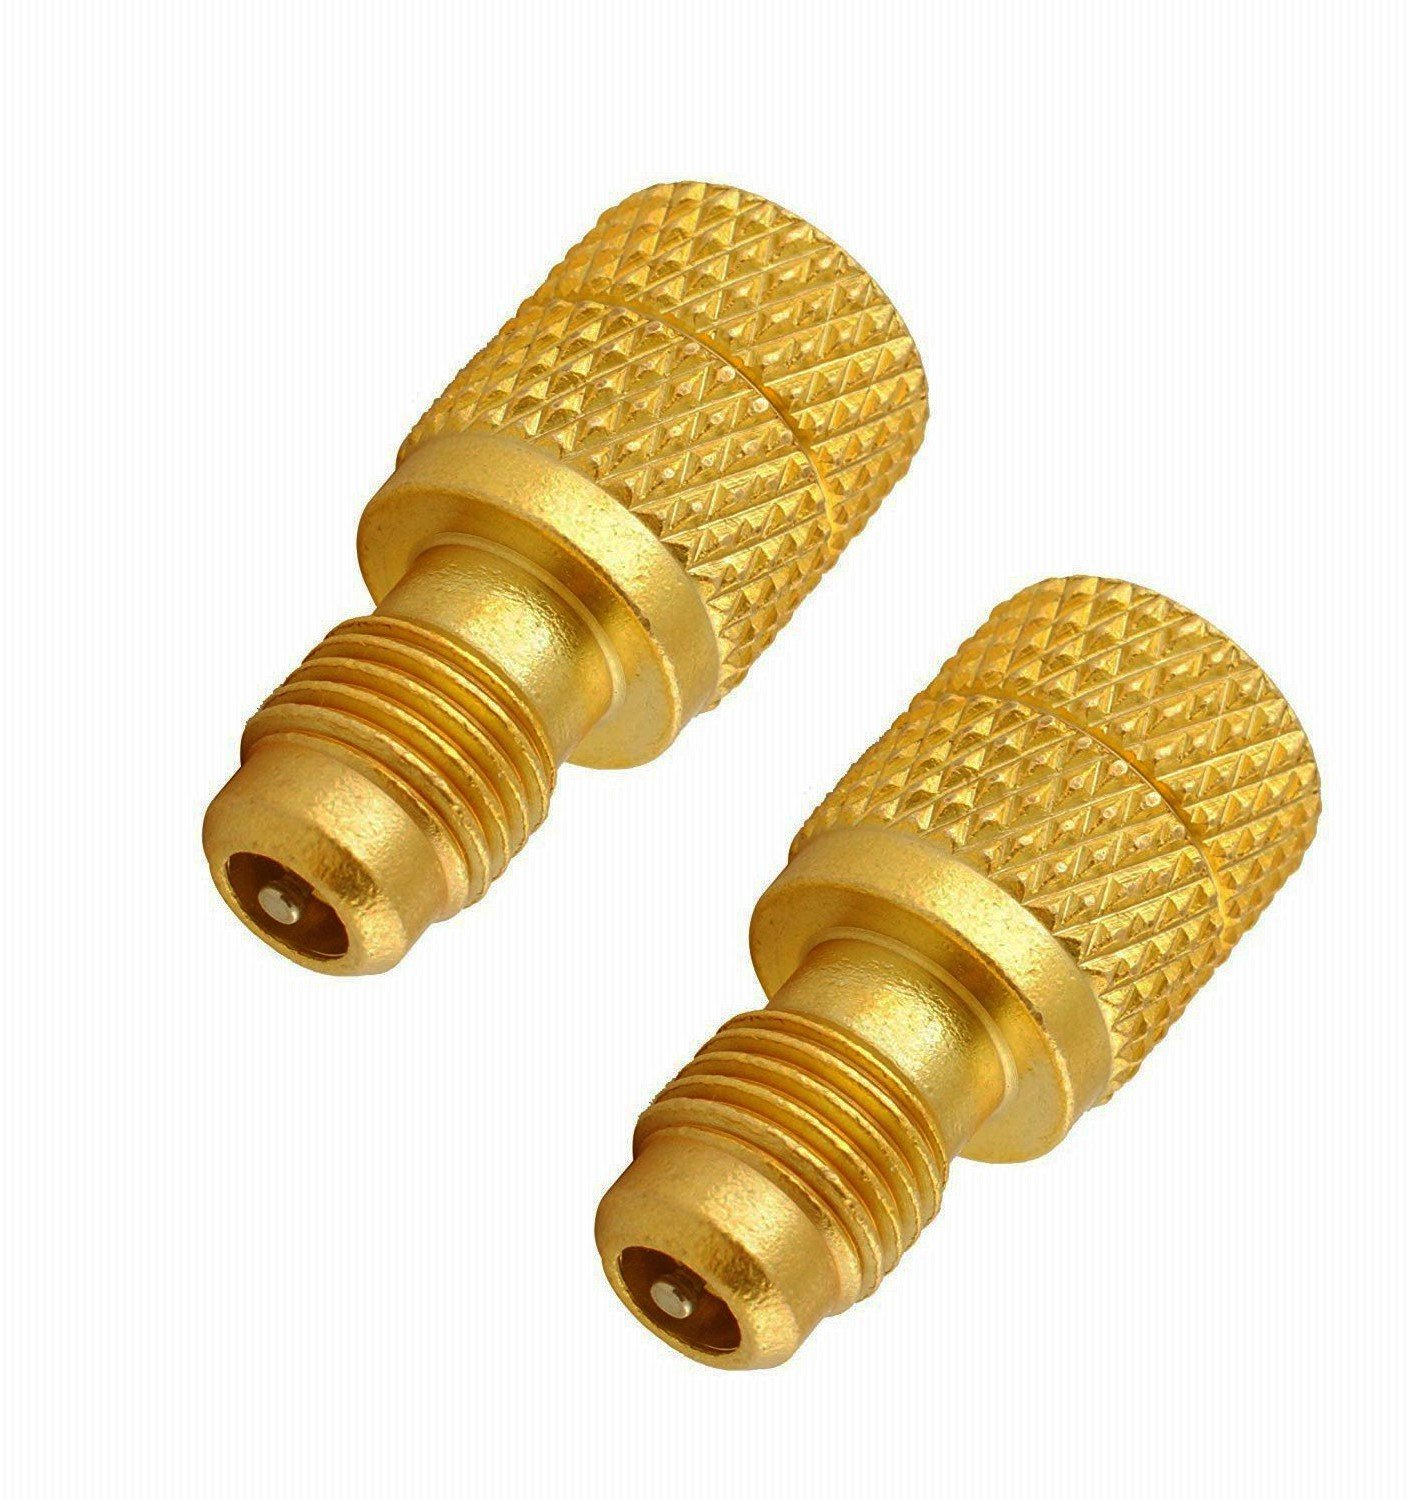 GooMeng4S Acme AC R134a Brass Adapter Freon Fitting 1/4'' Male to 1/2'' Female w/Valve Core,Refrigerant R134a Air Conditioning Adapter (2PCS)